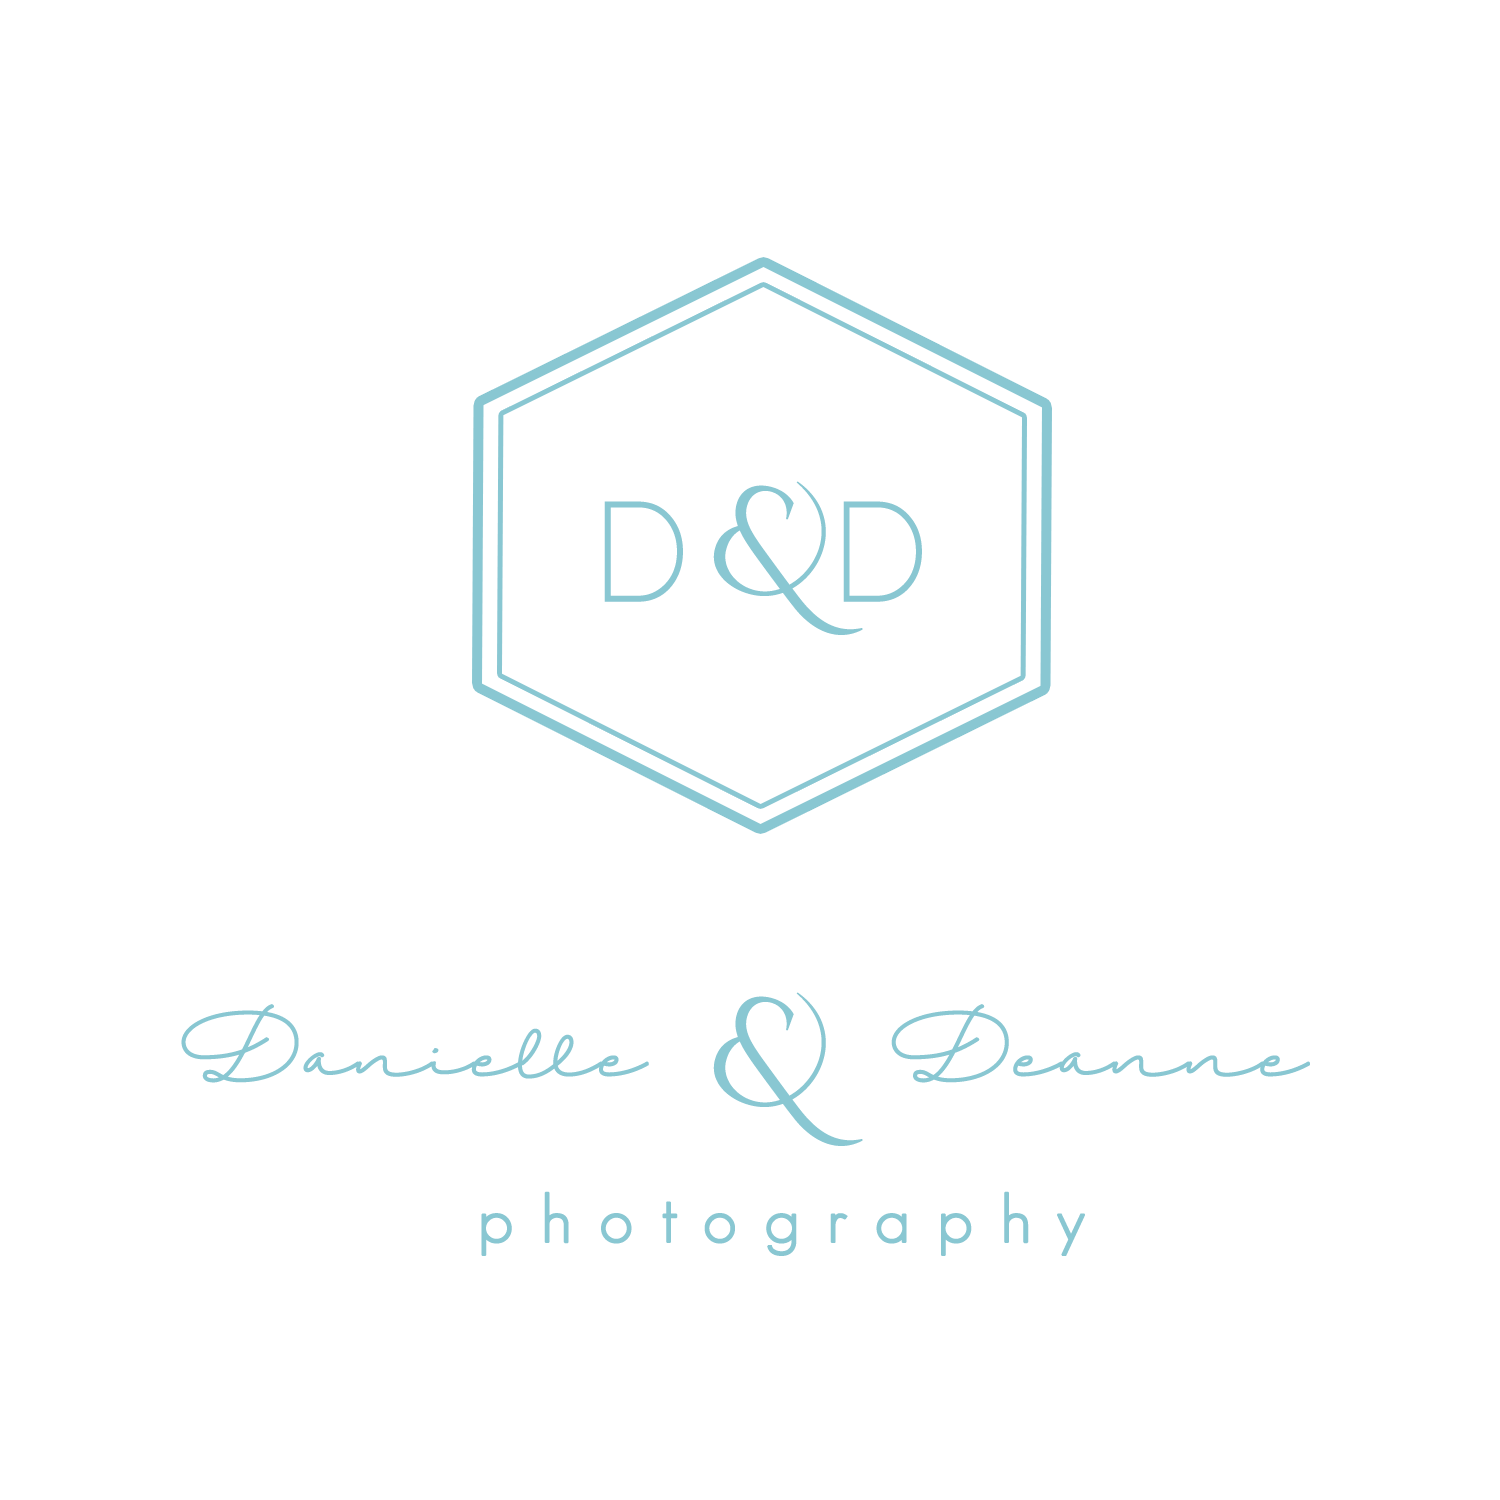 danielle and deanne photography logo